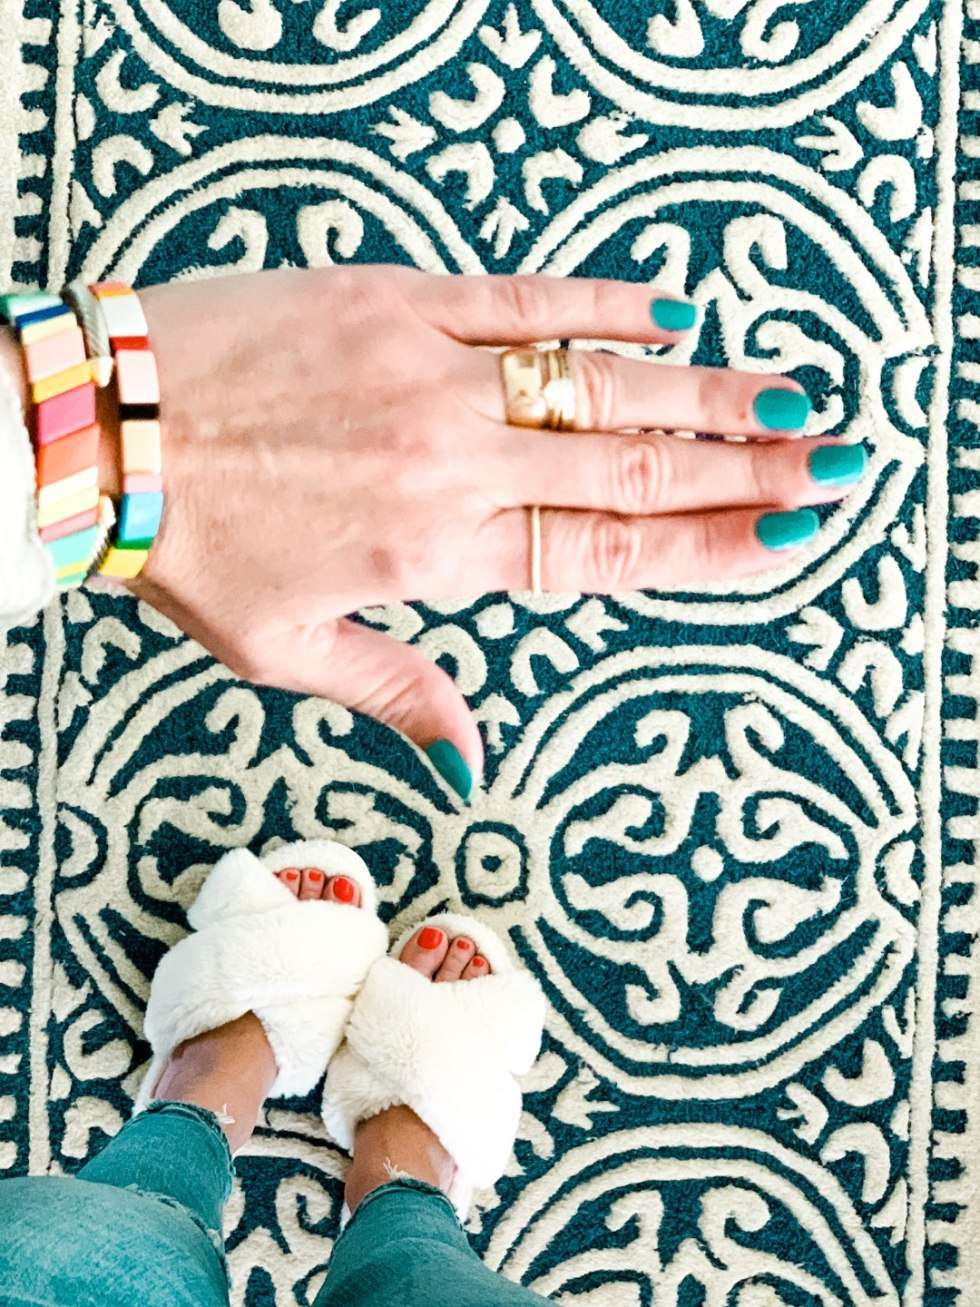 How to Master the Perfect Manicure at Home - I'm Fixin' To - @mbg0112 |  Home Manicure Essentials by popular NC beauty blog, I'm Fixin' To: image of a woman with a blue polish manicure.